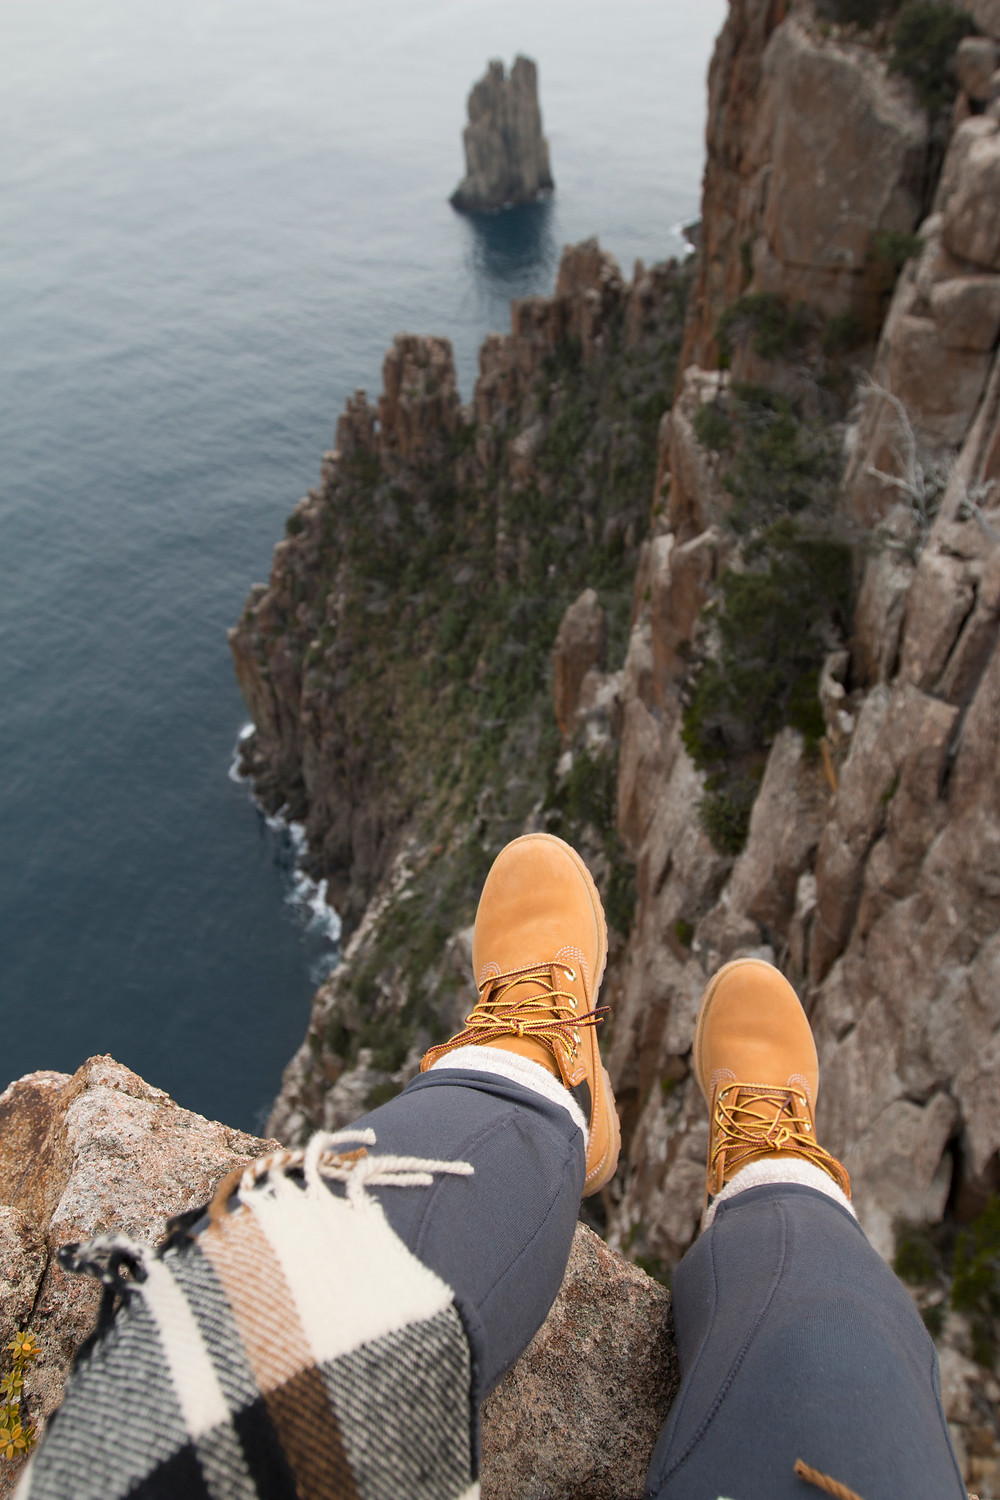 Trusty Timberlands hanging over the edge.